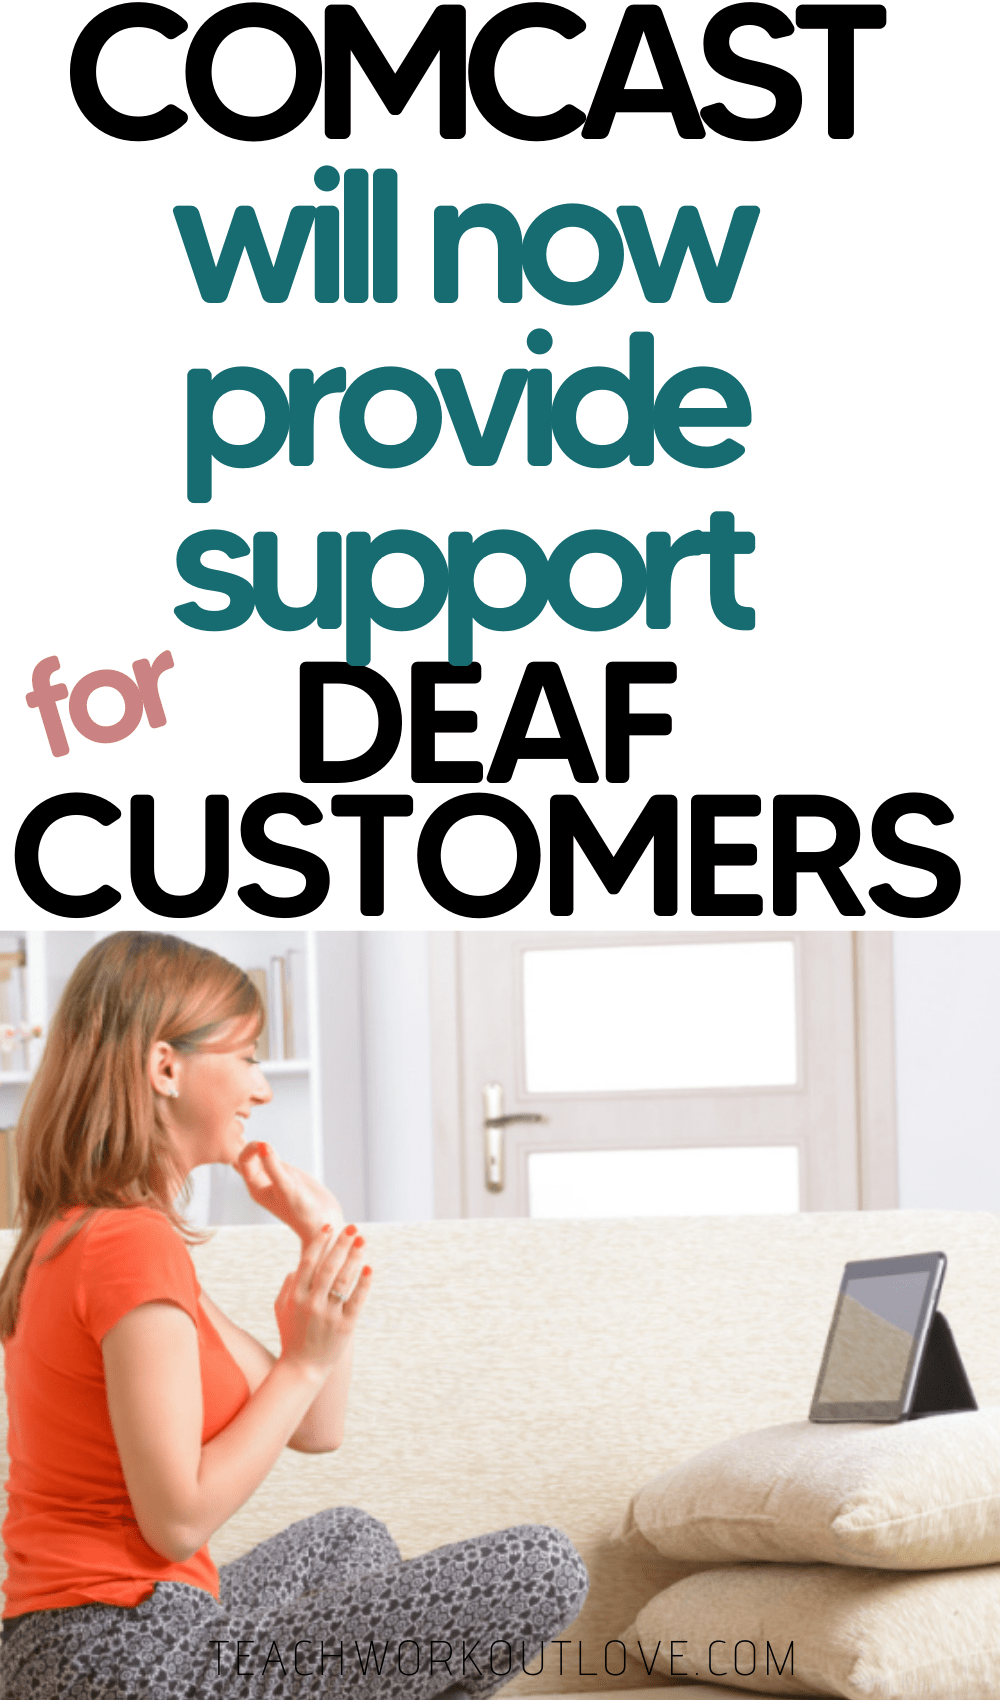 One of Comcast's largest accessibility support centers in the country has a new option to support deaf customers in Liberty Lake, Washington